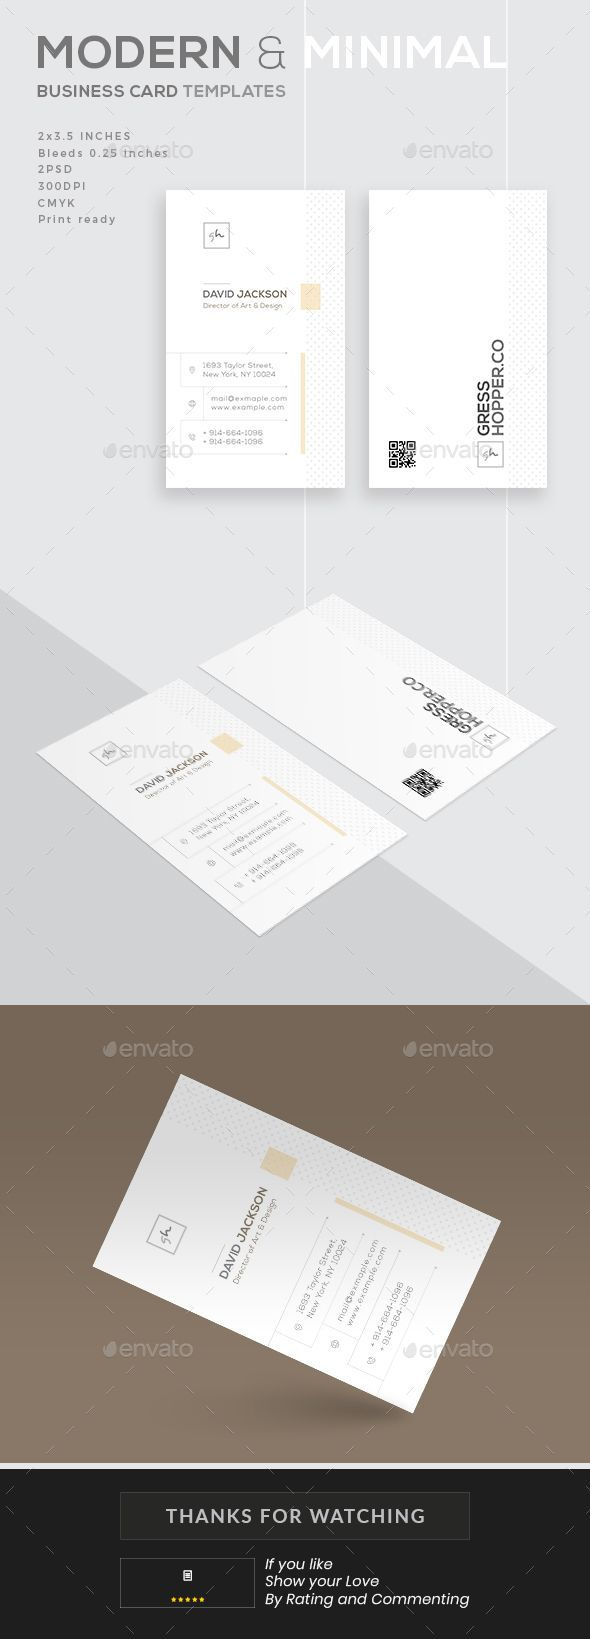 3826 Best Business Card Images On Pinterest Business Card Design